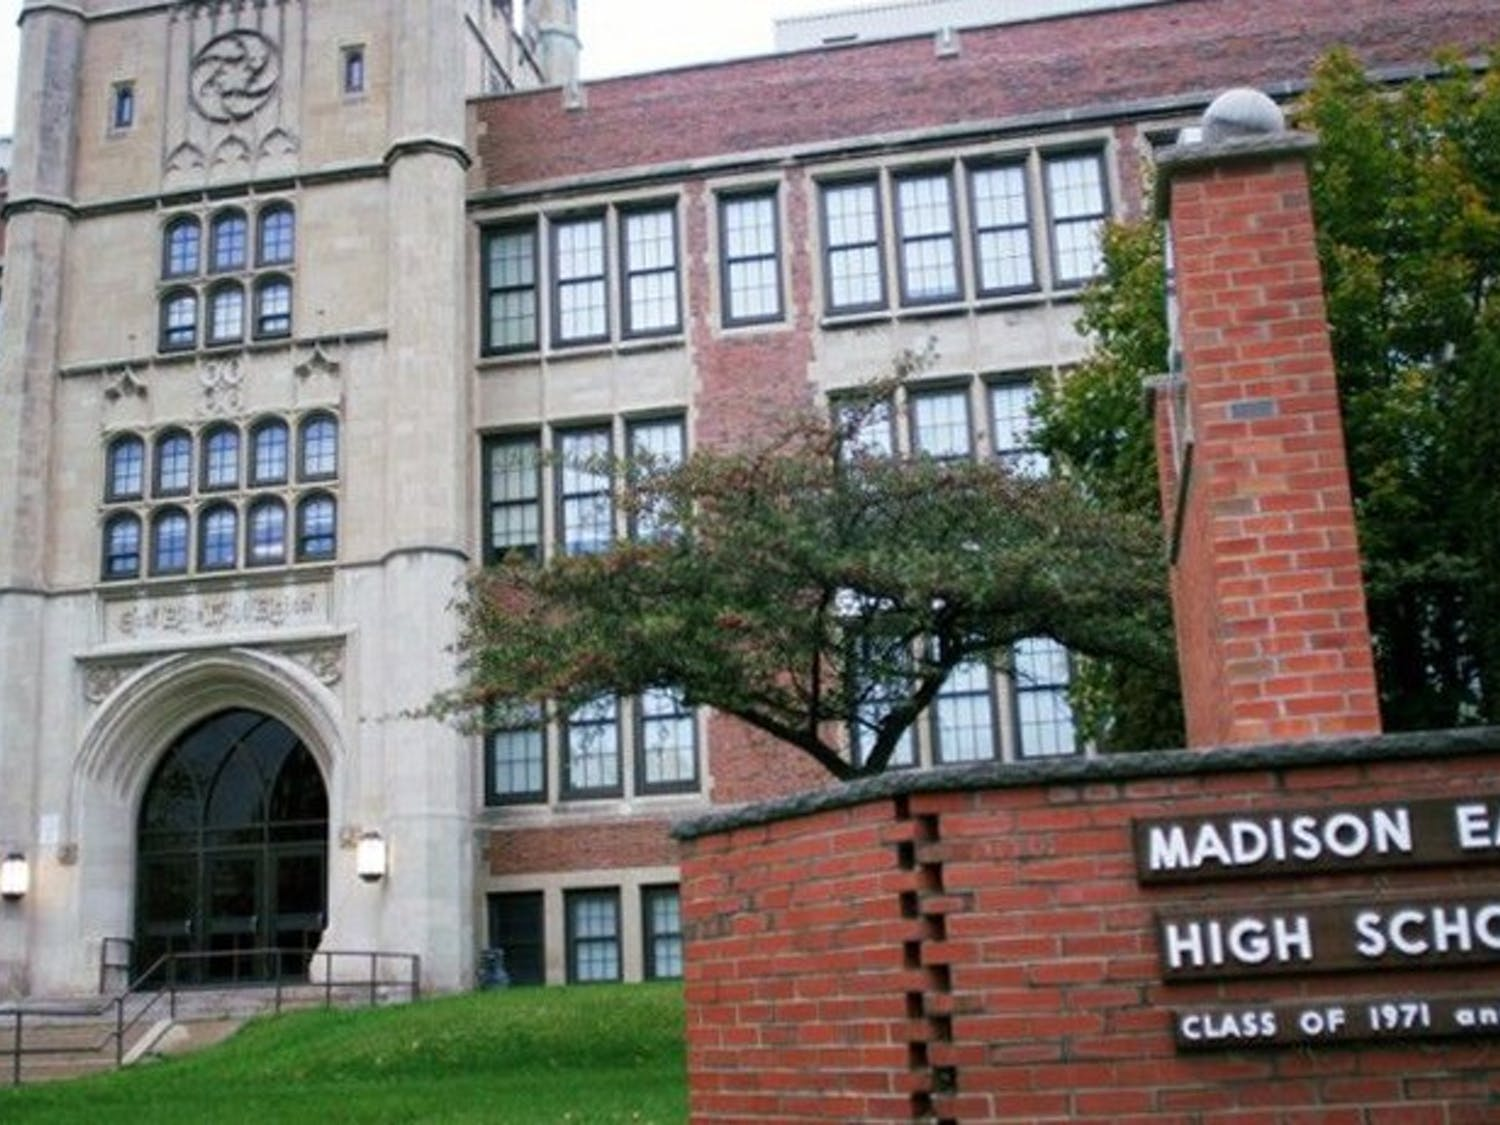 Madison residents will vote on whether to increase property taxes in order to fund schools, including Madison's East High School.